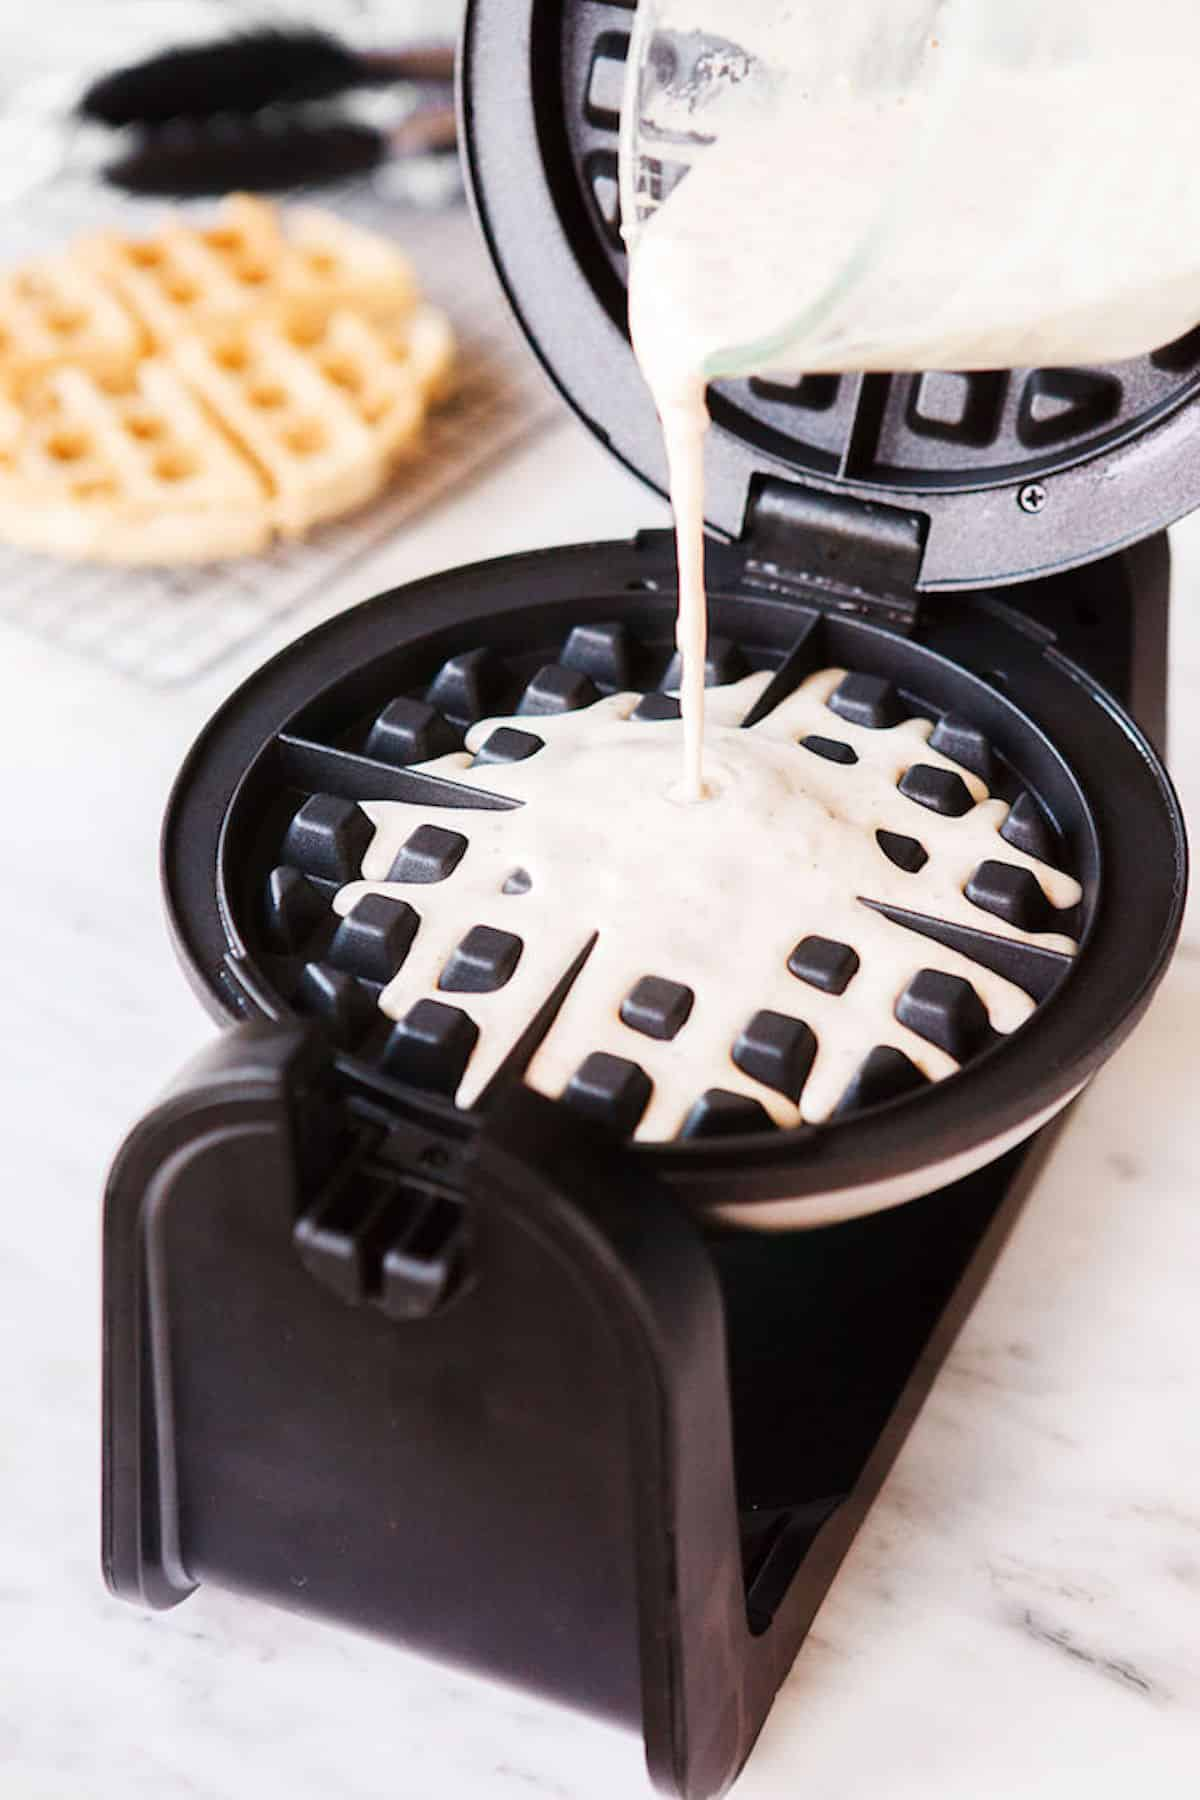 waffle batter poured on a waffle maker